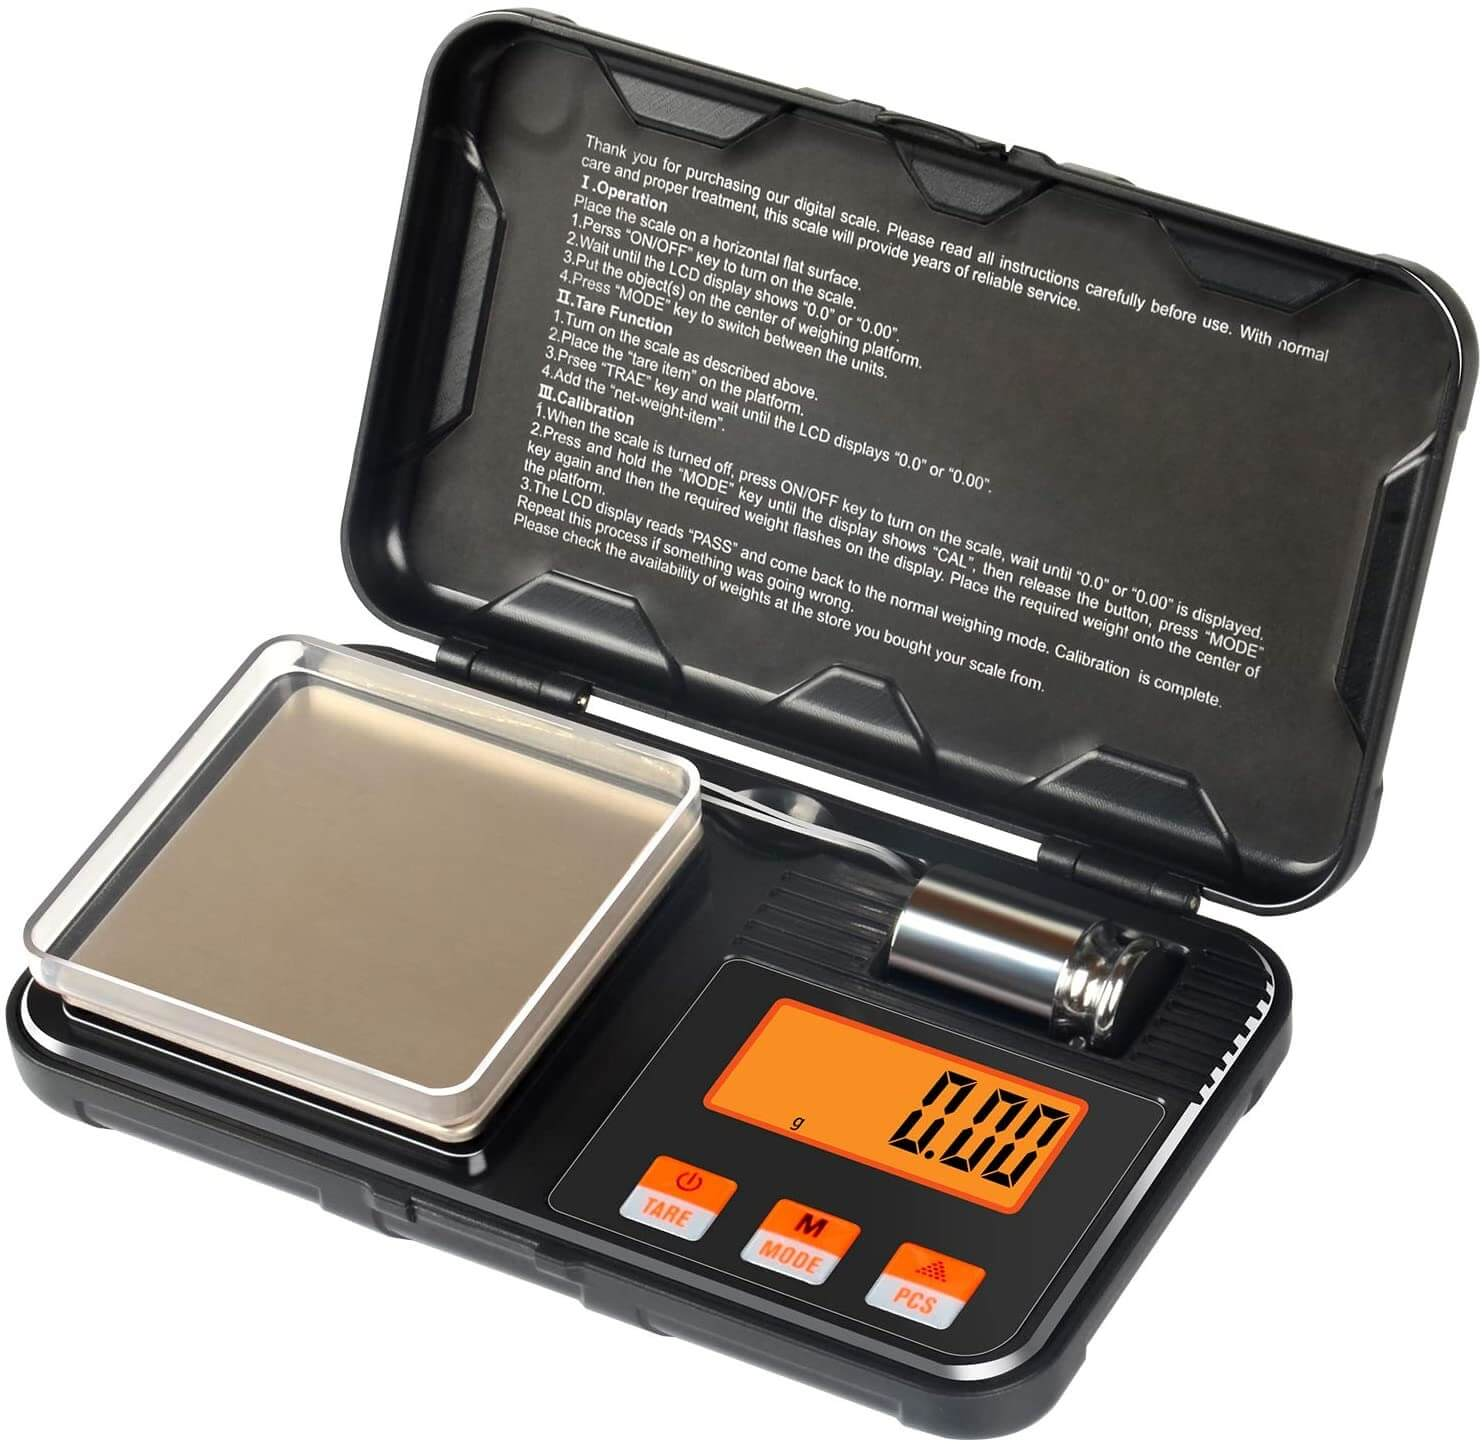 Lan Sheng Mechanical Powder Scale